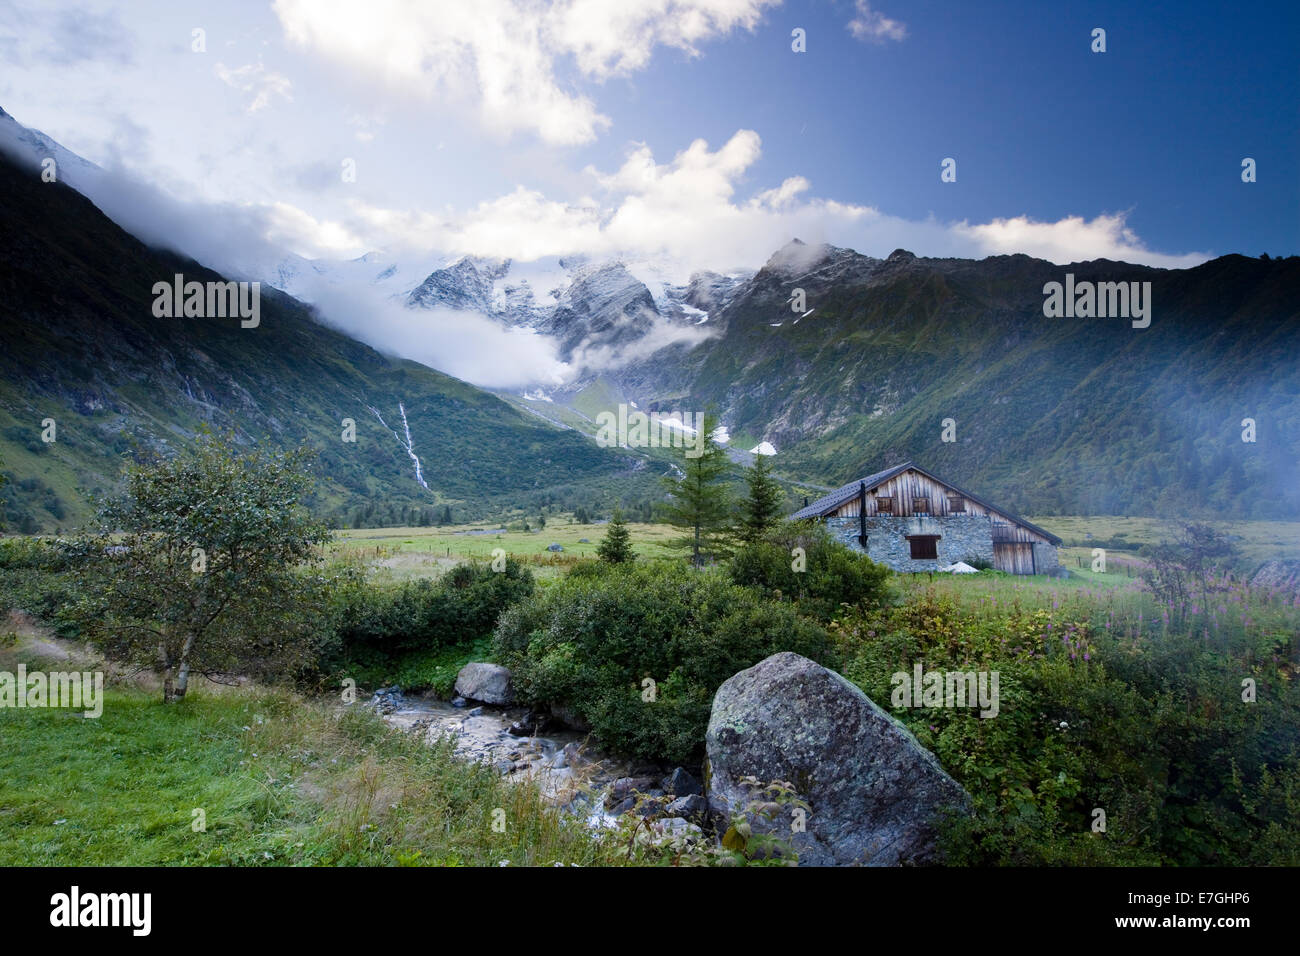 View from Refuge de Miage on Domes de Miage in Mont Blanc massif, French Alps - Stock Image